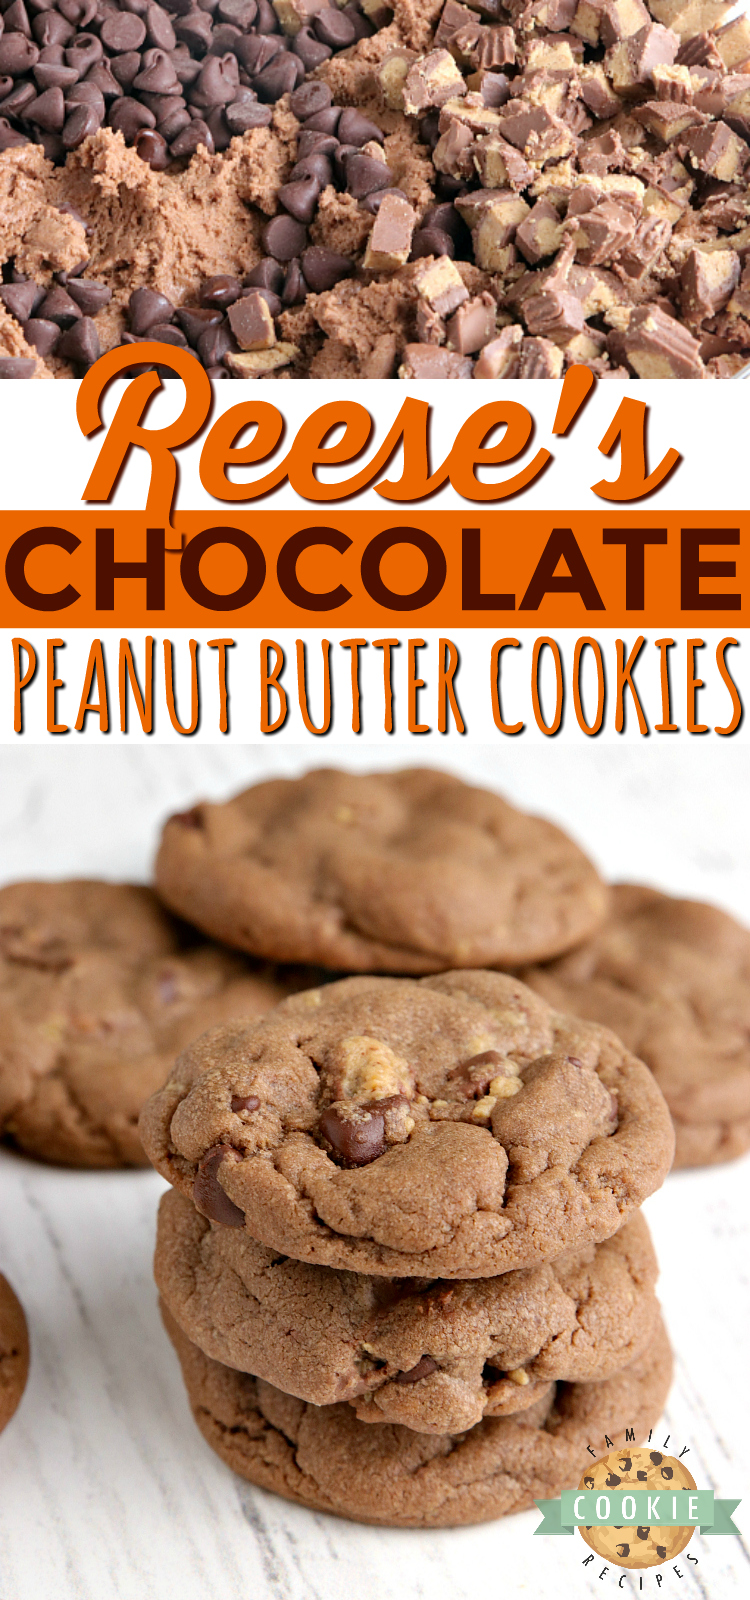 Reese's Chocolate Peanut Butter Cookies are full of chocolate, peanut butter and Reese's Peanut Butter Cups. Peanut butter cookie recipe that is soft, chewy and absolutely perfect!